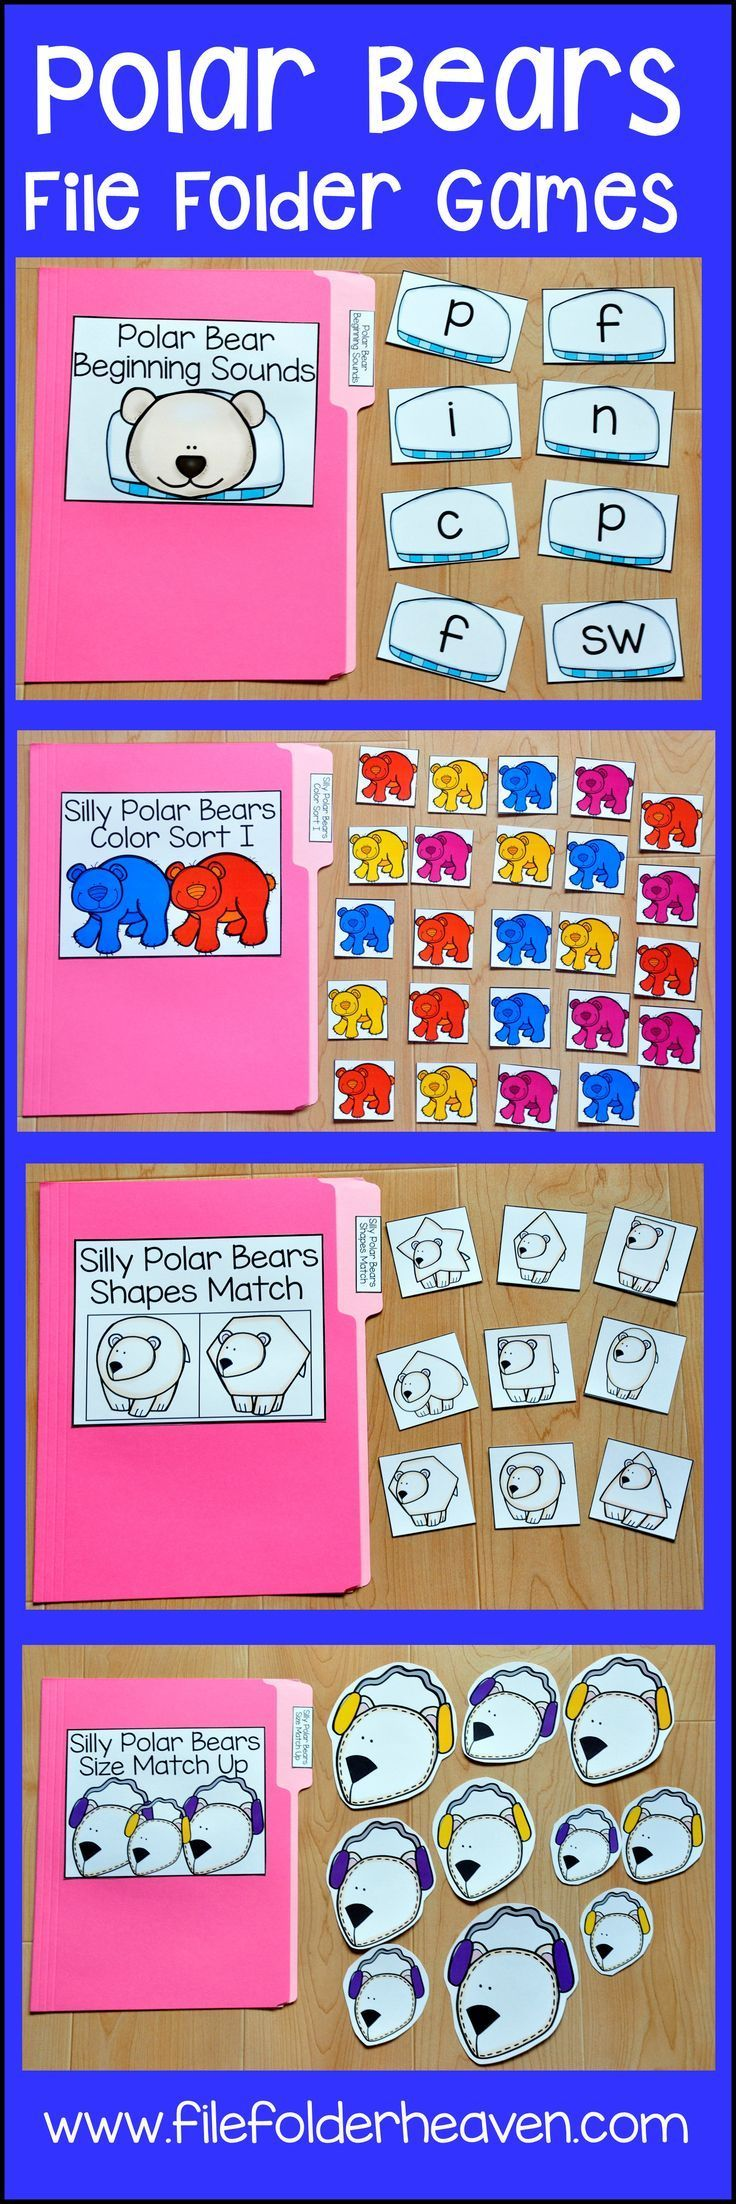 This Polar Bear File Folder Games Mini-Bundle focuses on basic matching and sorting skills.    This set includes nine unique file folder games with three bonus games for differentiation (for a total of 12 games!) These activities  focus on basic skills, such as matching picture to picture, matching shapes, matching numbers, matching letters, matching by size, sorting by size, sorting by color, and sorting by likeness and differences.